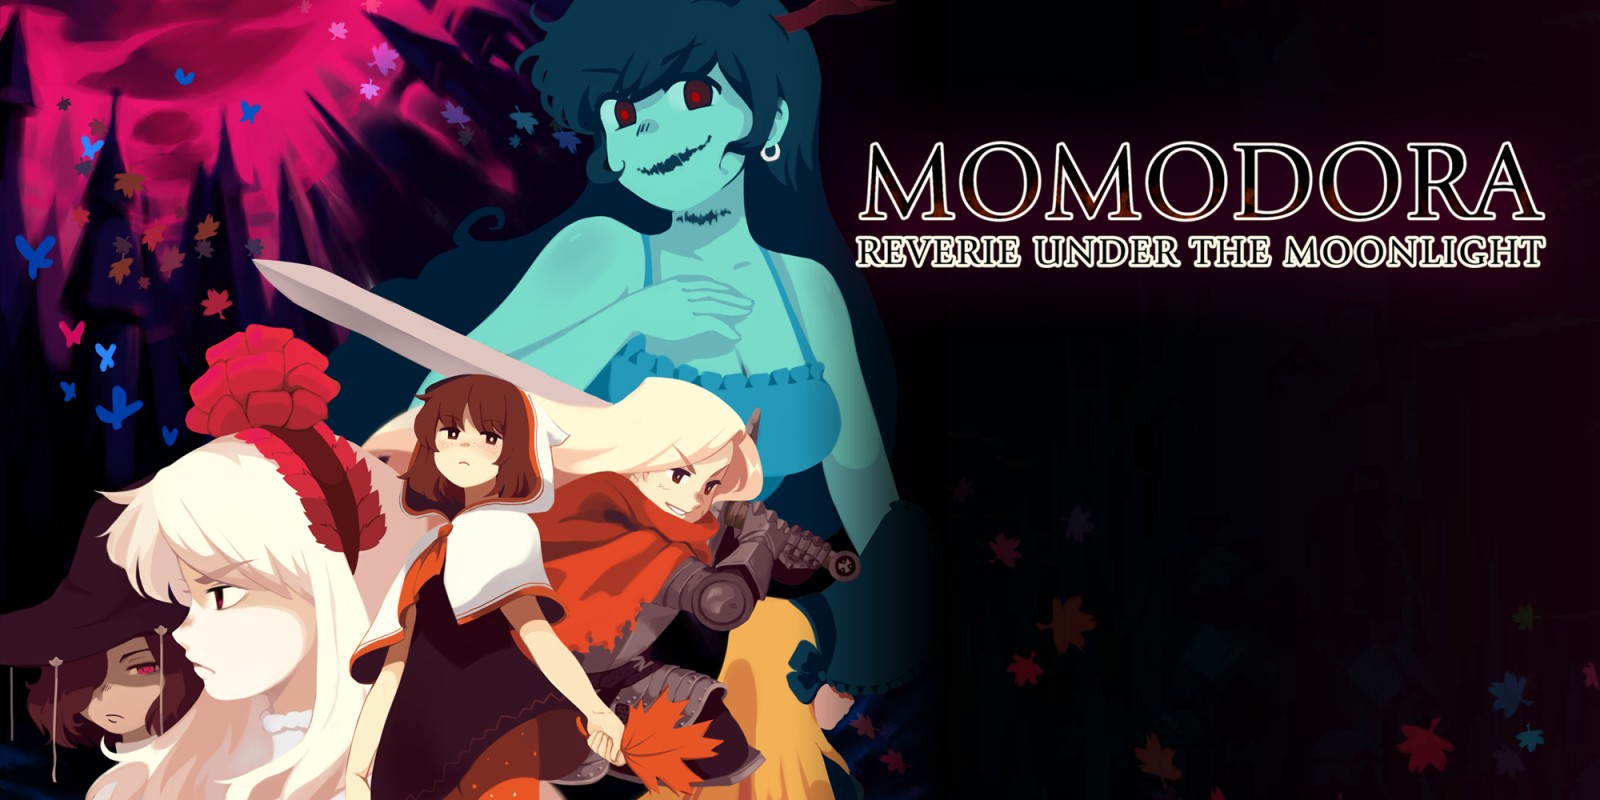 [Switch] Momodora: Reverie Under the Moonlight ganhará edição física pela Limited Run Games